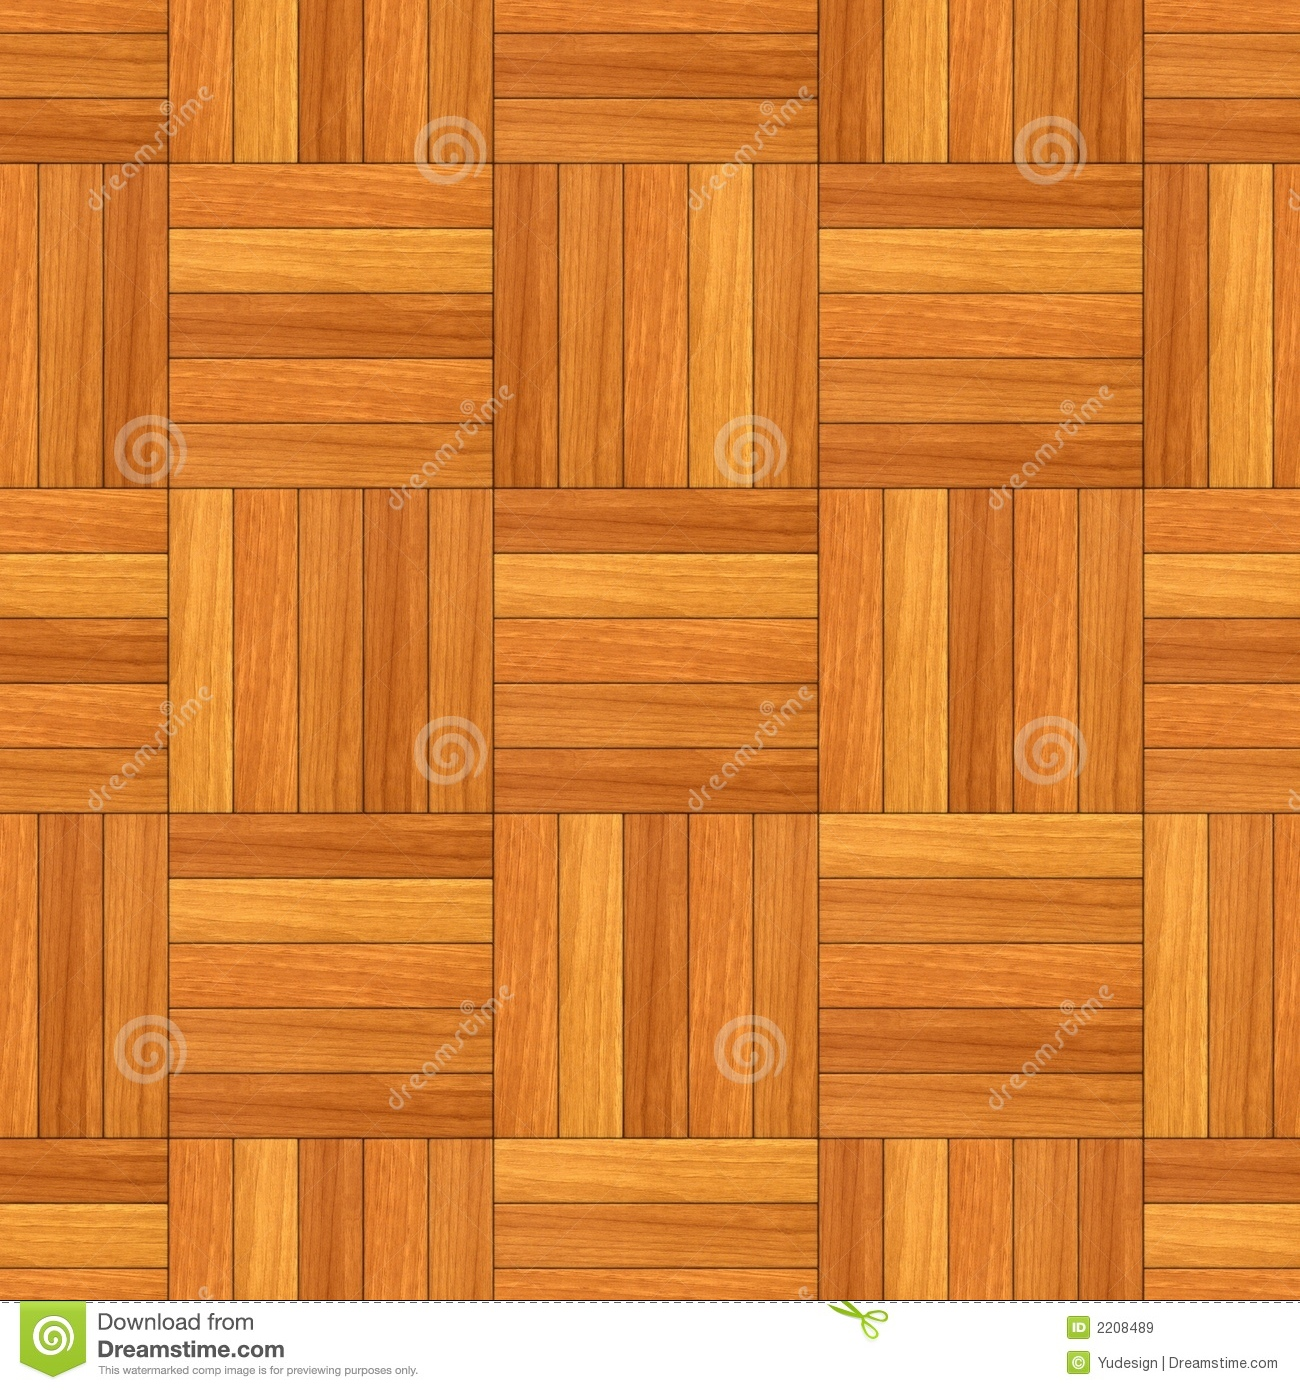 seamless parquet texture royalty free stock images image. Black Bedroom Furniture Sets. Home Design Ideas